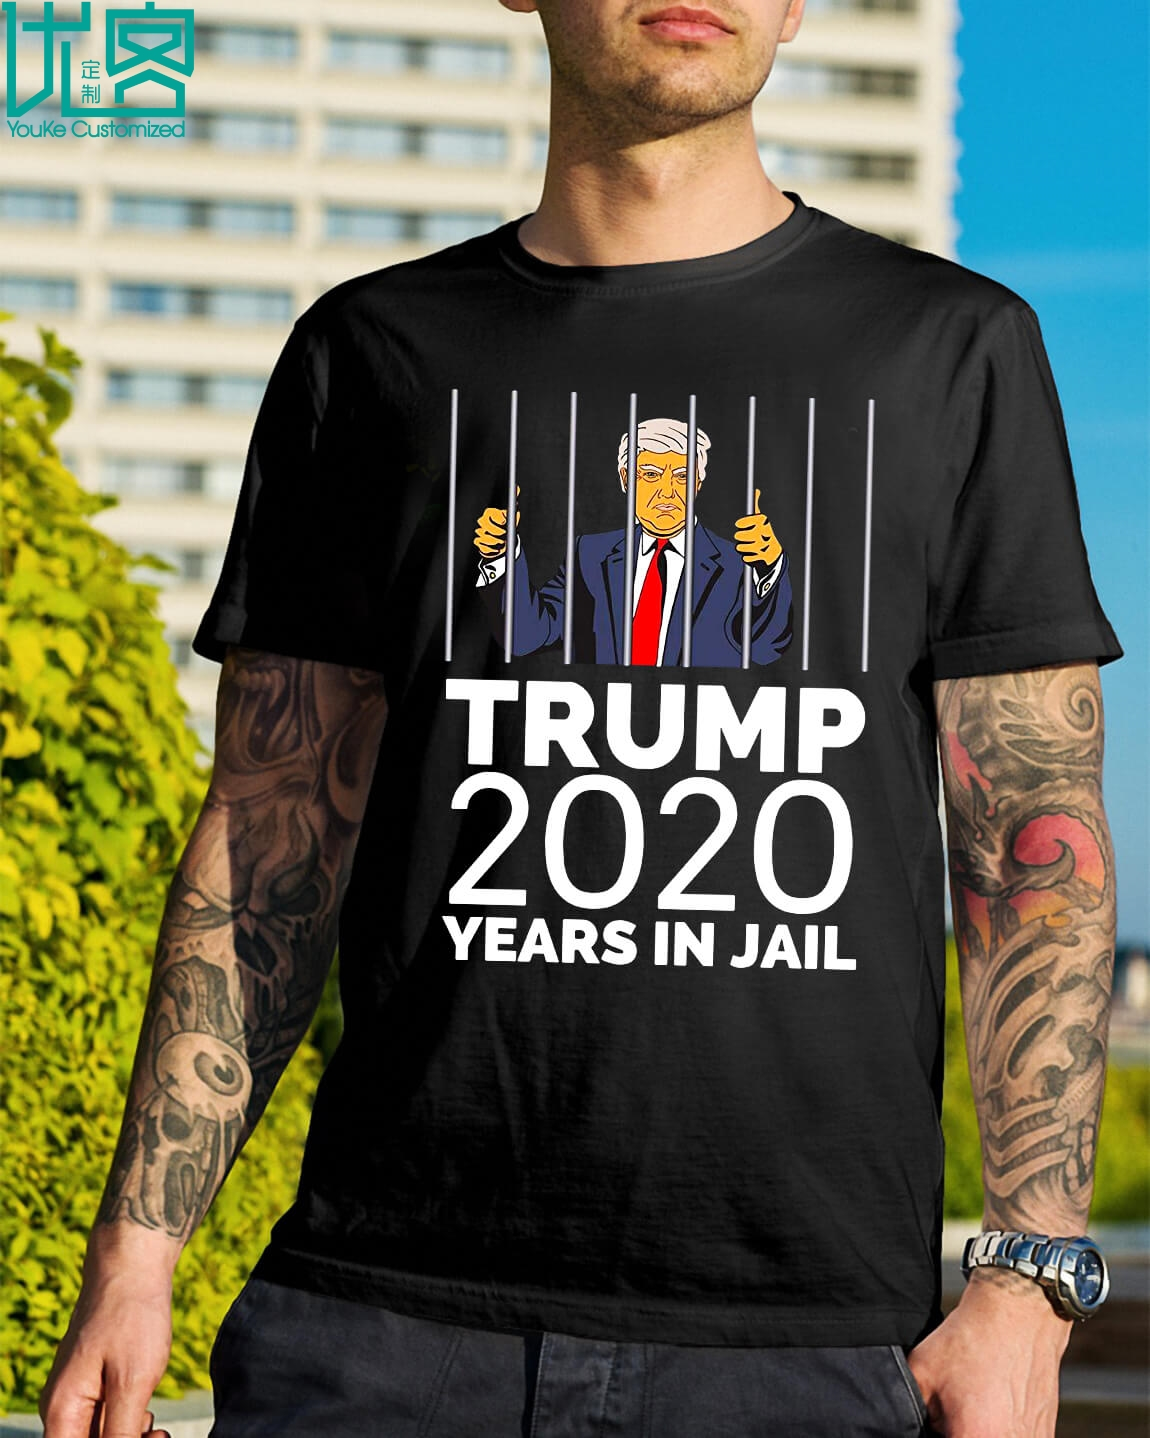 Gildan Brand Trump <font><b>Protest</b></font> 2020 Years In Jail T-Shirt 2019 Summer Men's Short Sleeve T-Shirt image